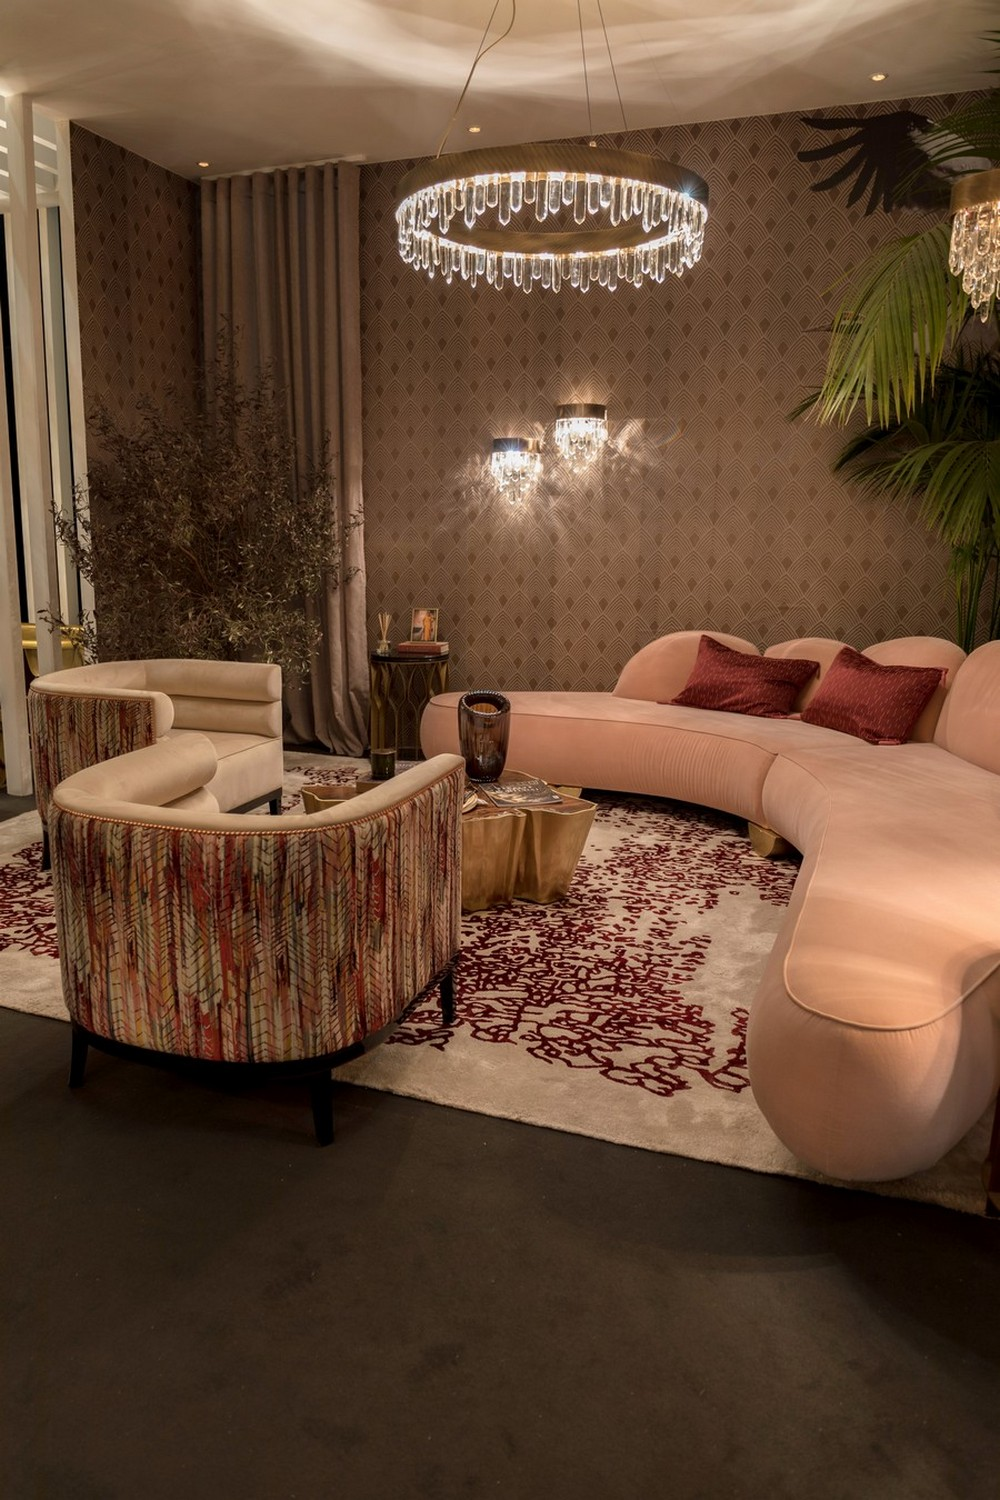 Top 10 Luxury Living Room Designs From Famous Celebrities 10 luxury living room designs Top 10 Luxury Living Room Designs From Famous Celebrities Discover 7 Amazing Luxury Brands At The AD Design Show 2019 3